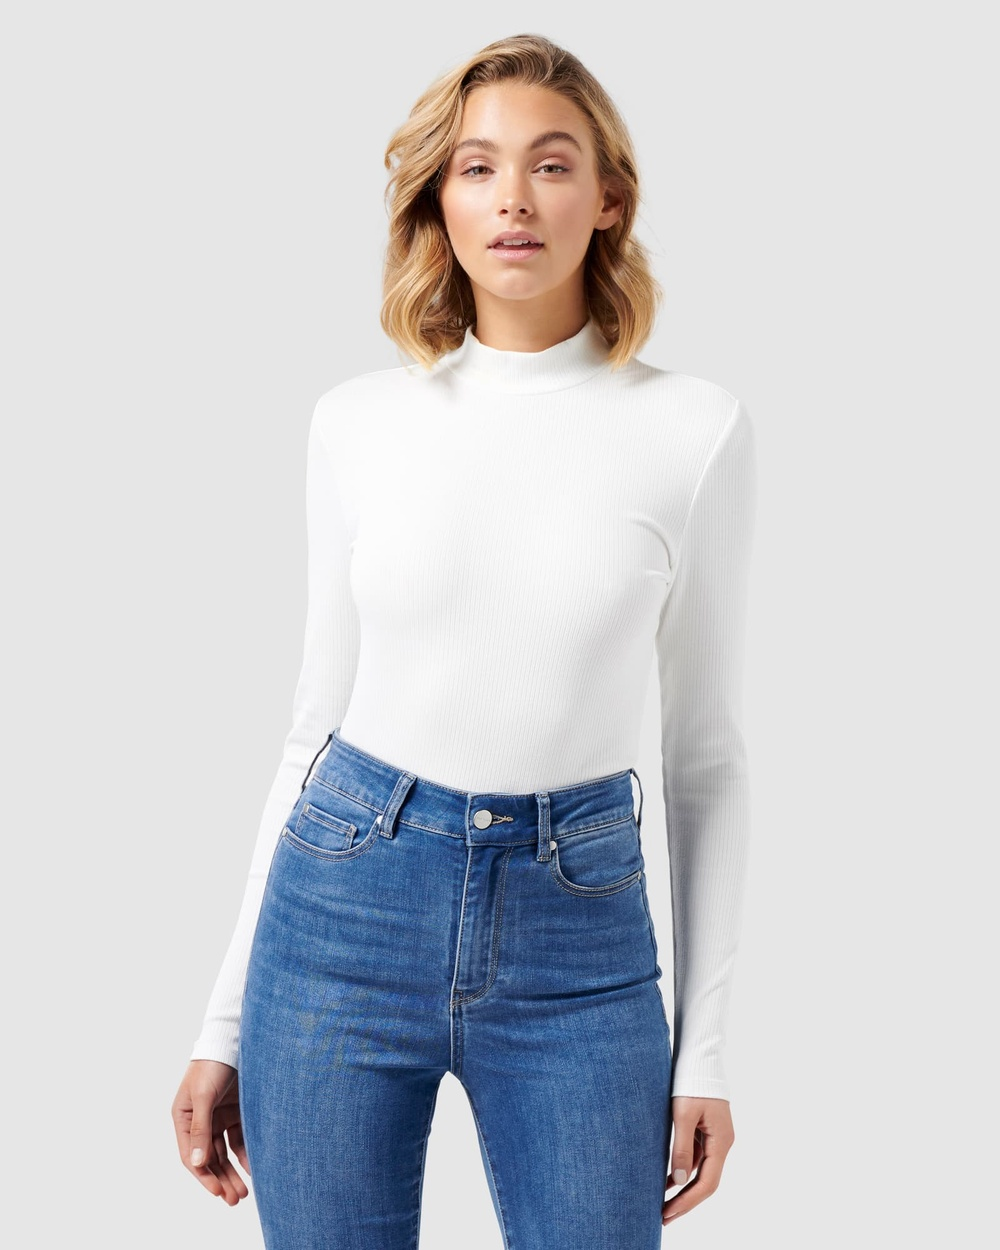 Forever New - Brandi High Neck Rib Long Sleeve Top - Tops (Porcelain) Brandi High Neck Rib Long Sleeve Top